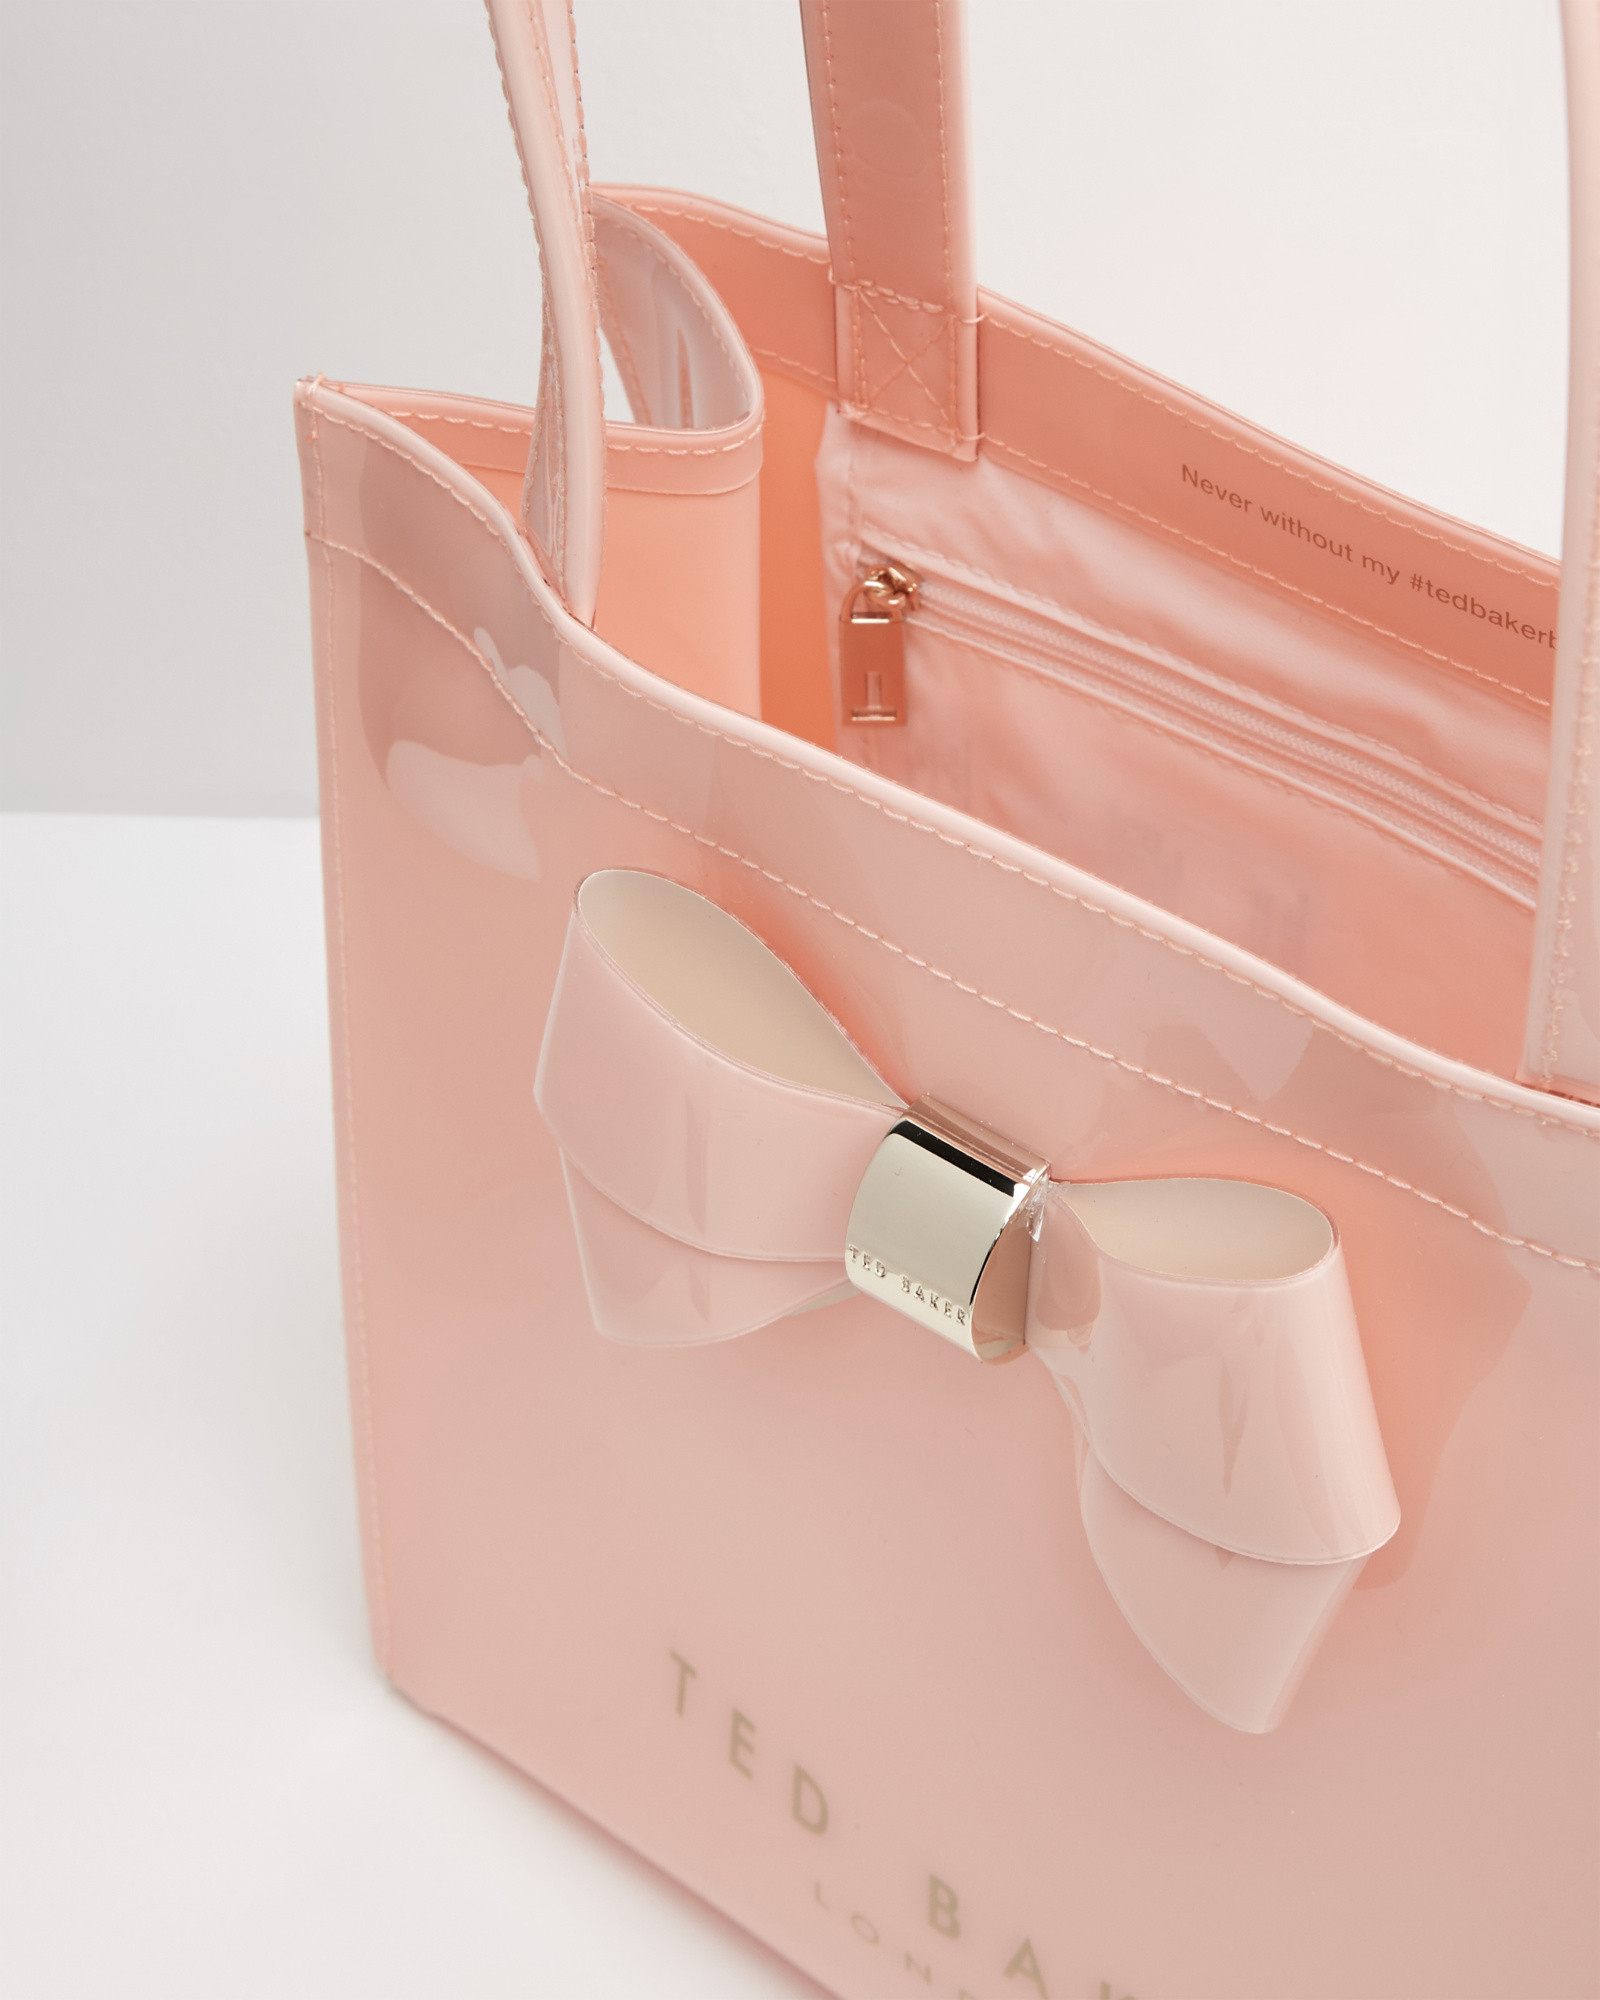 3c673305f147 Lyst - Ted Baker Bow Detail Small Shopper Bag in Pink